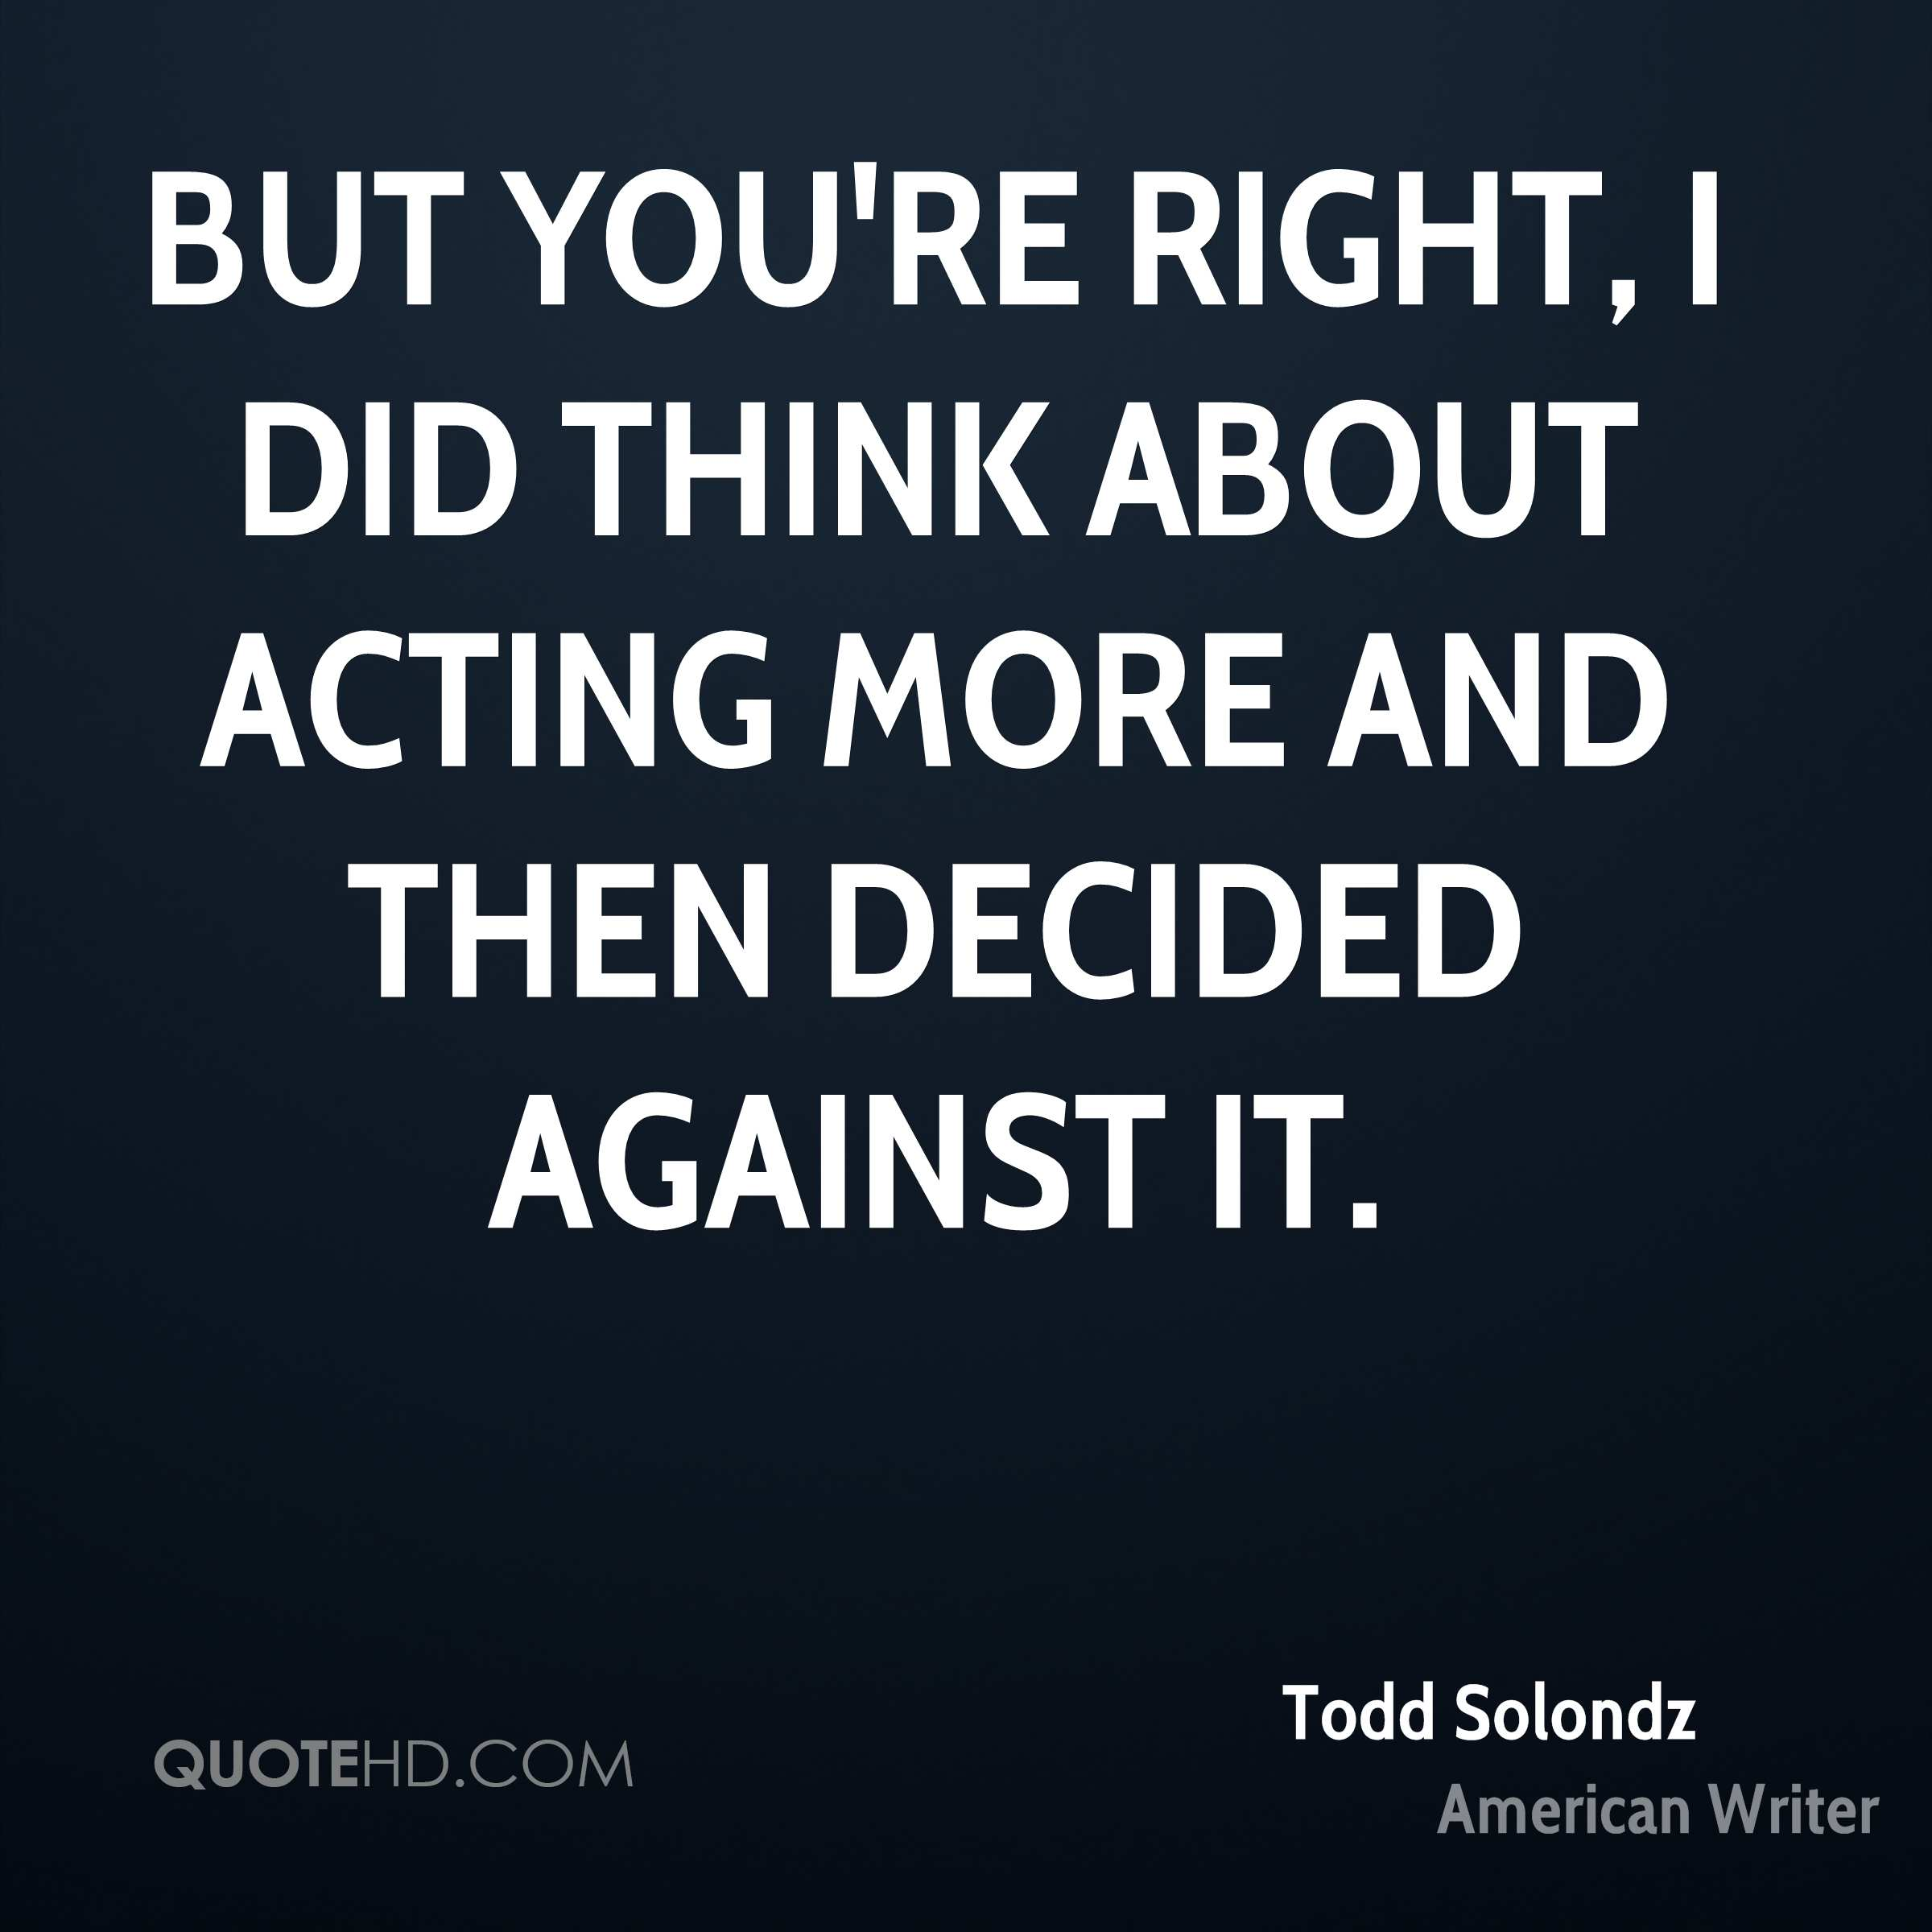 But you're right, I did think about acting more and then decided against it.